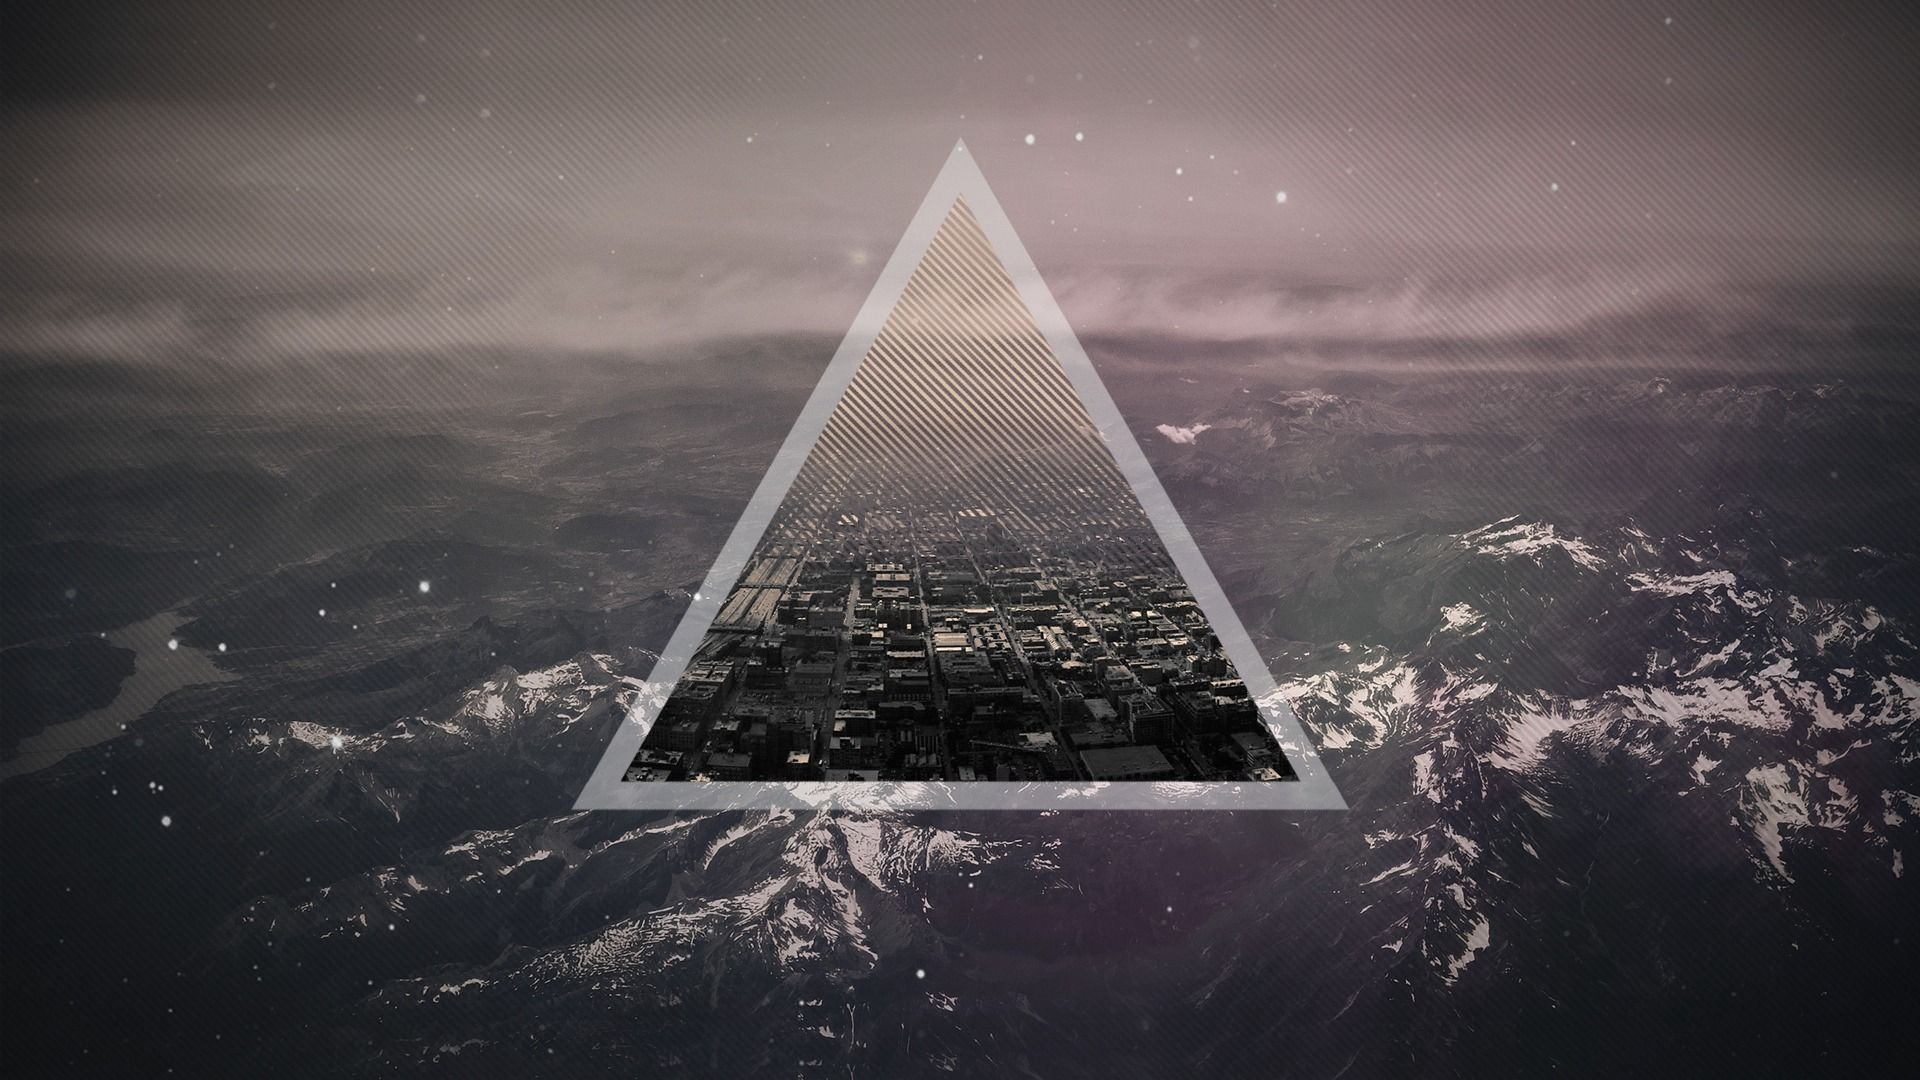 Triangle Download Wallpaper